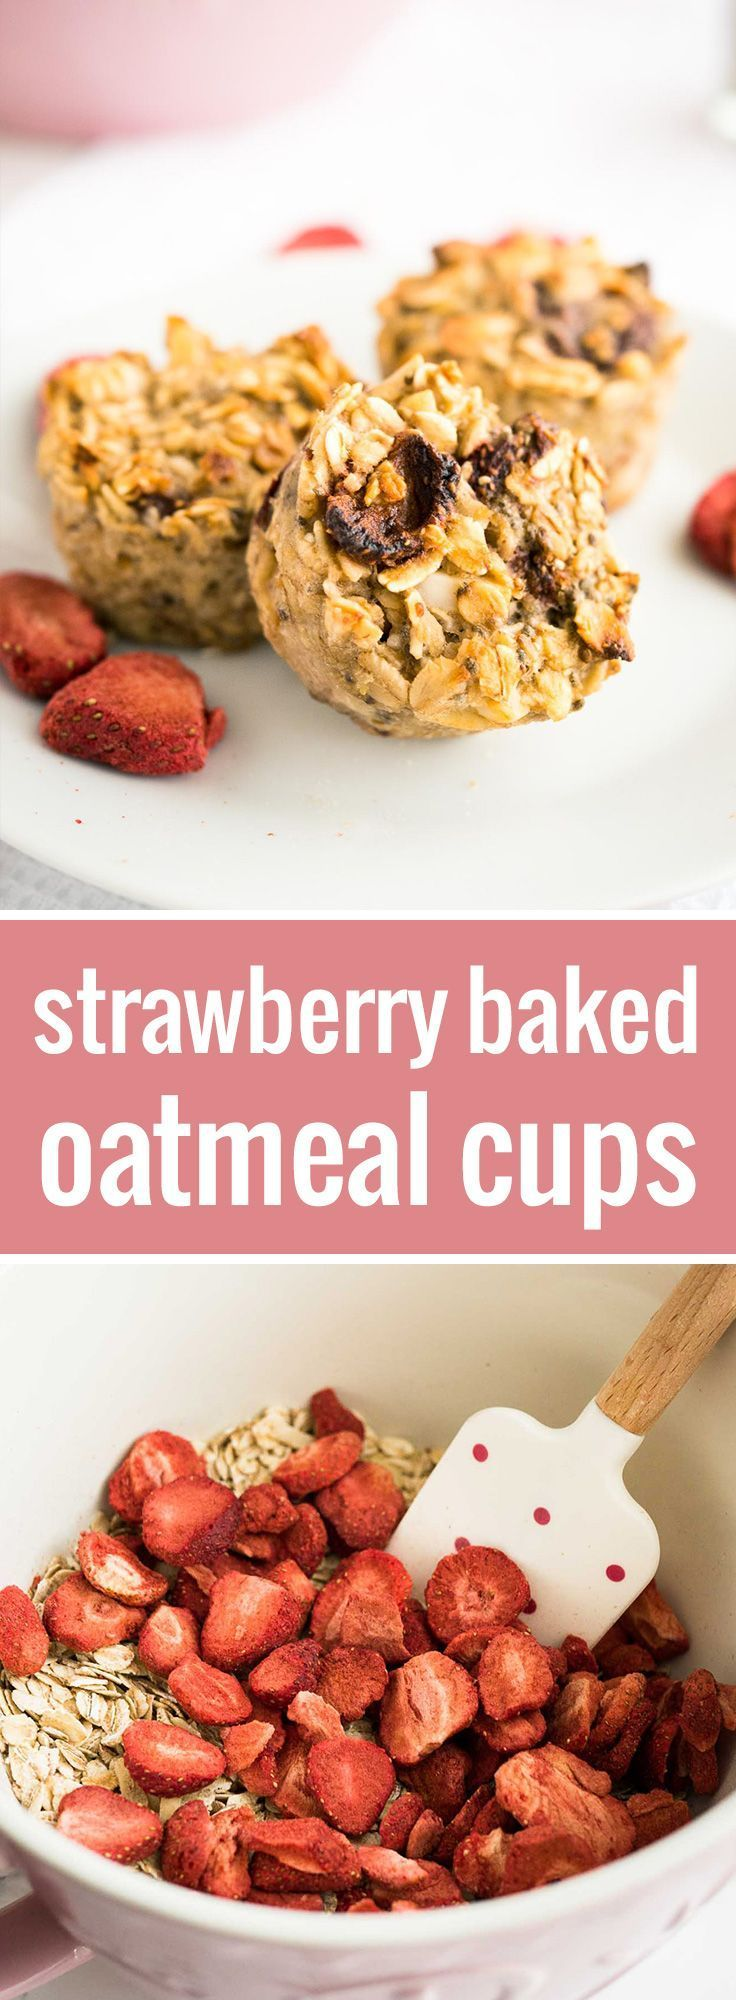 These Strawberry Baked Oatmeal Cups are perfect for busy mornings! A healthy grab-and-go breakfast filled with oats, strawberries, and chia.